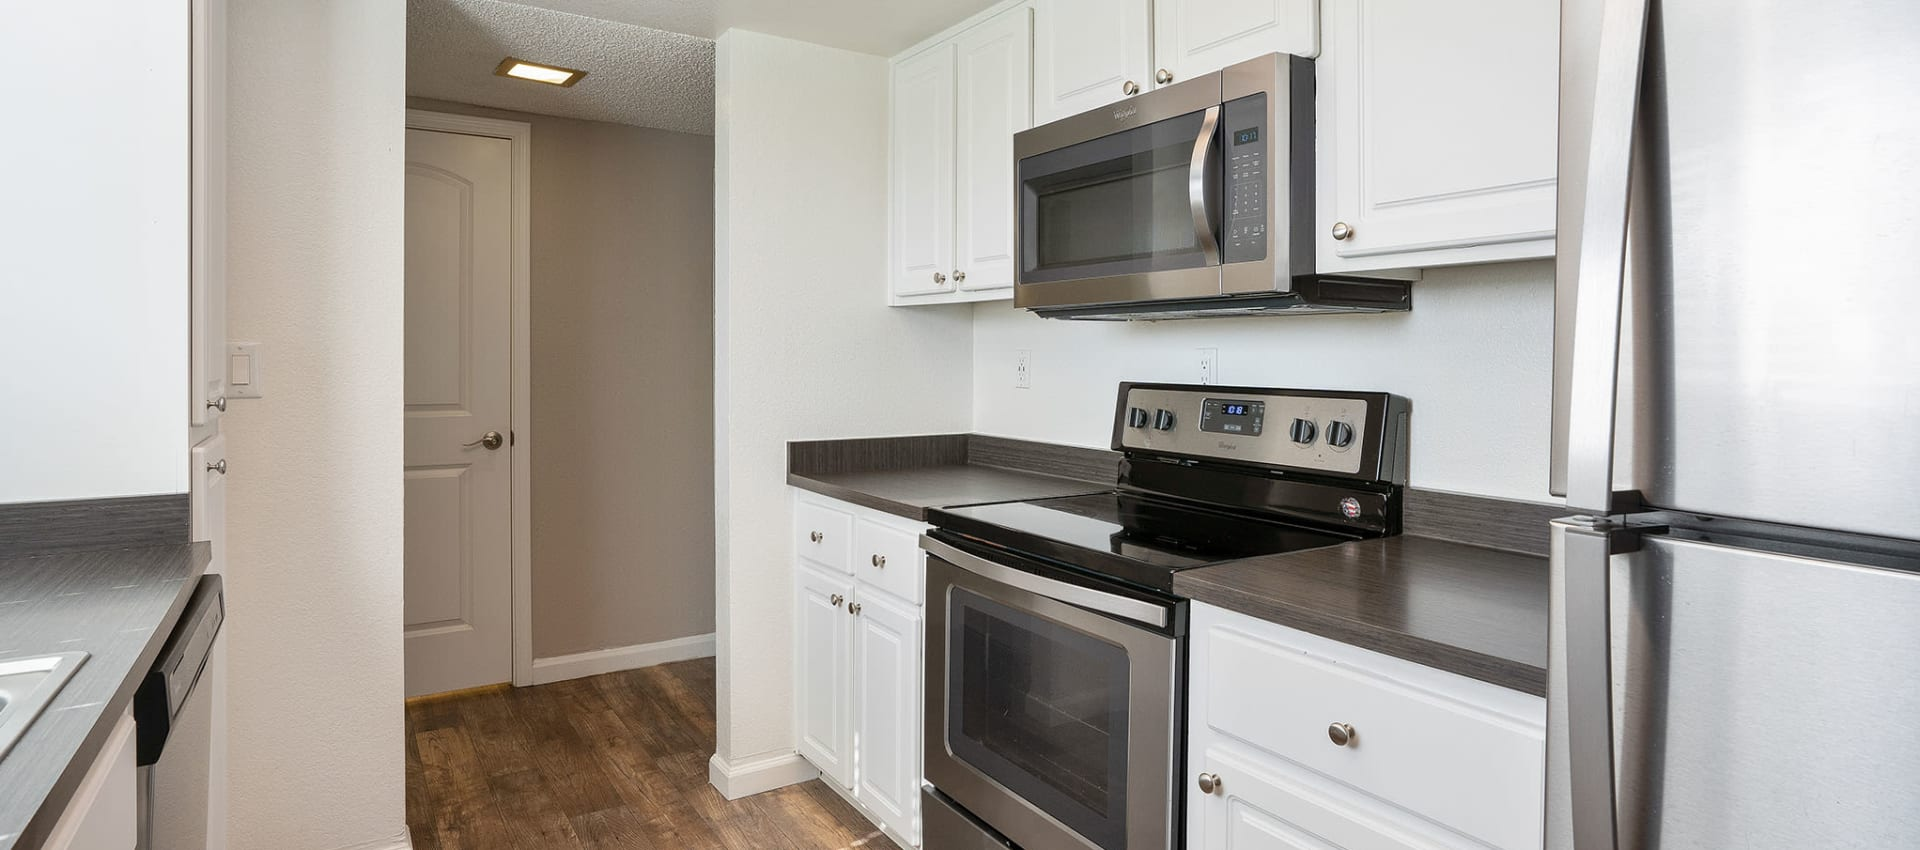 Luxury kitchen at Ridgecrest Apartment Homes in Martinez, California